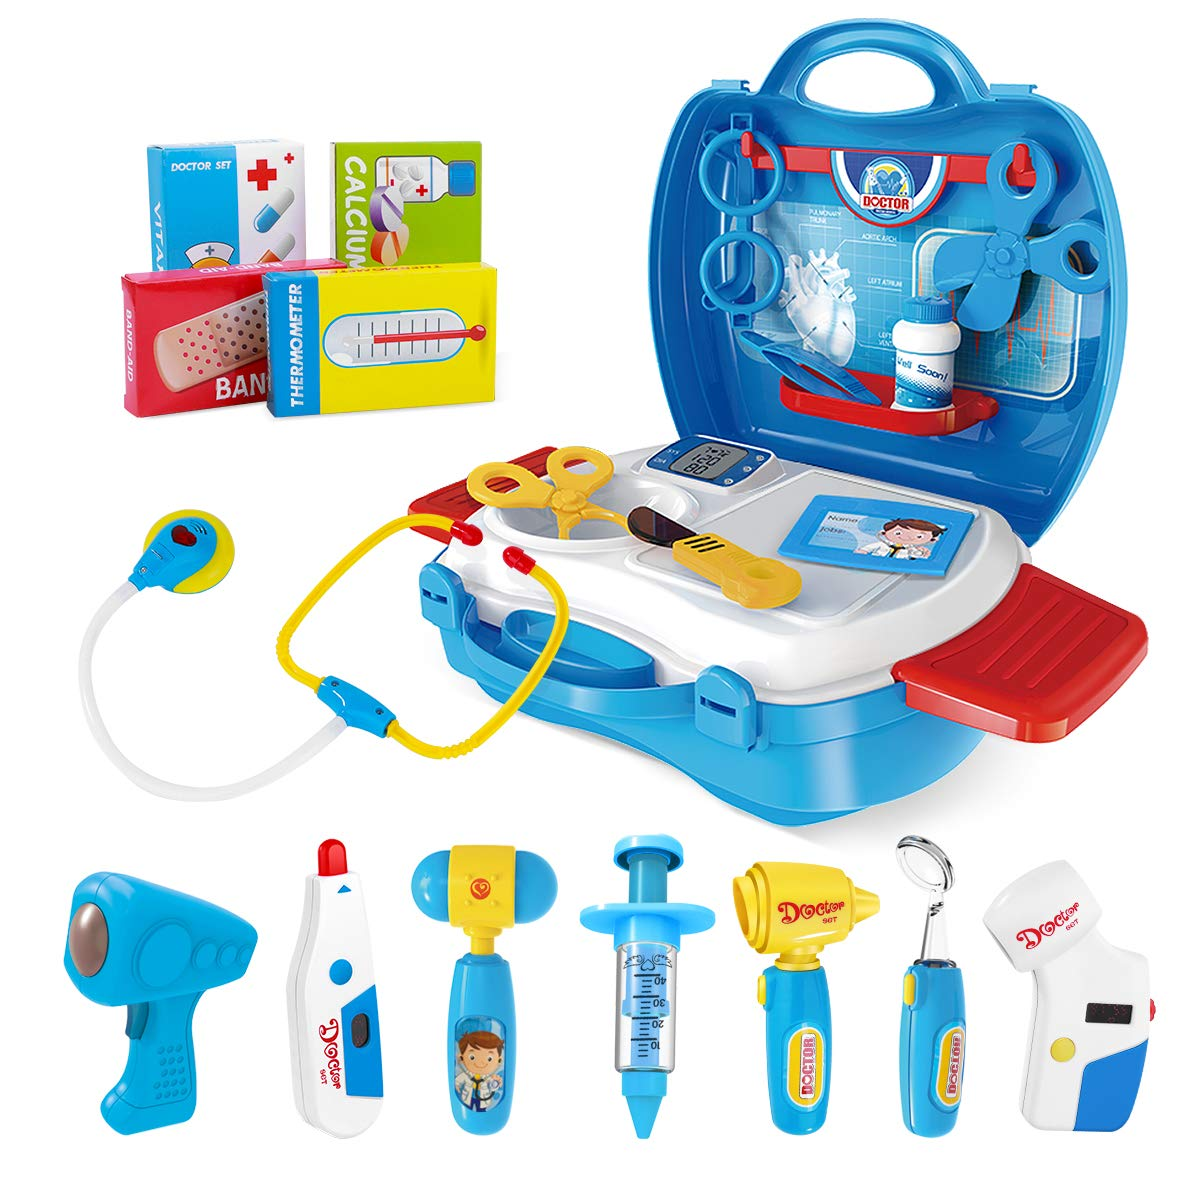 iBaseToy Doctor Kit for Kids, 27pcs Pretend Dentist Doctor Medical Playset with Electronic Stethoscope, Medical Kits for Easter Gift, Educational Doctor Toys for Toddler Boys Girls (Blue)